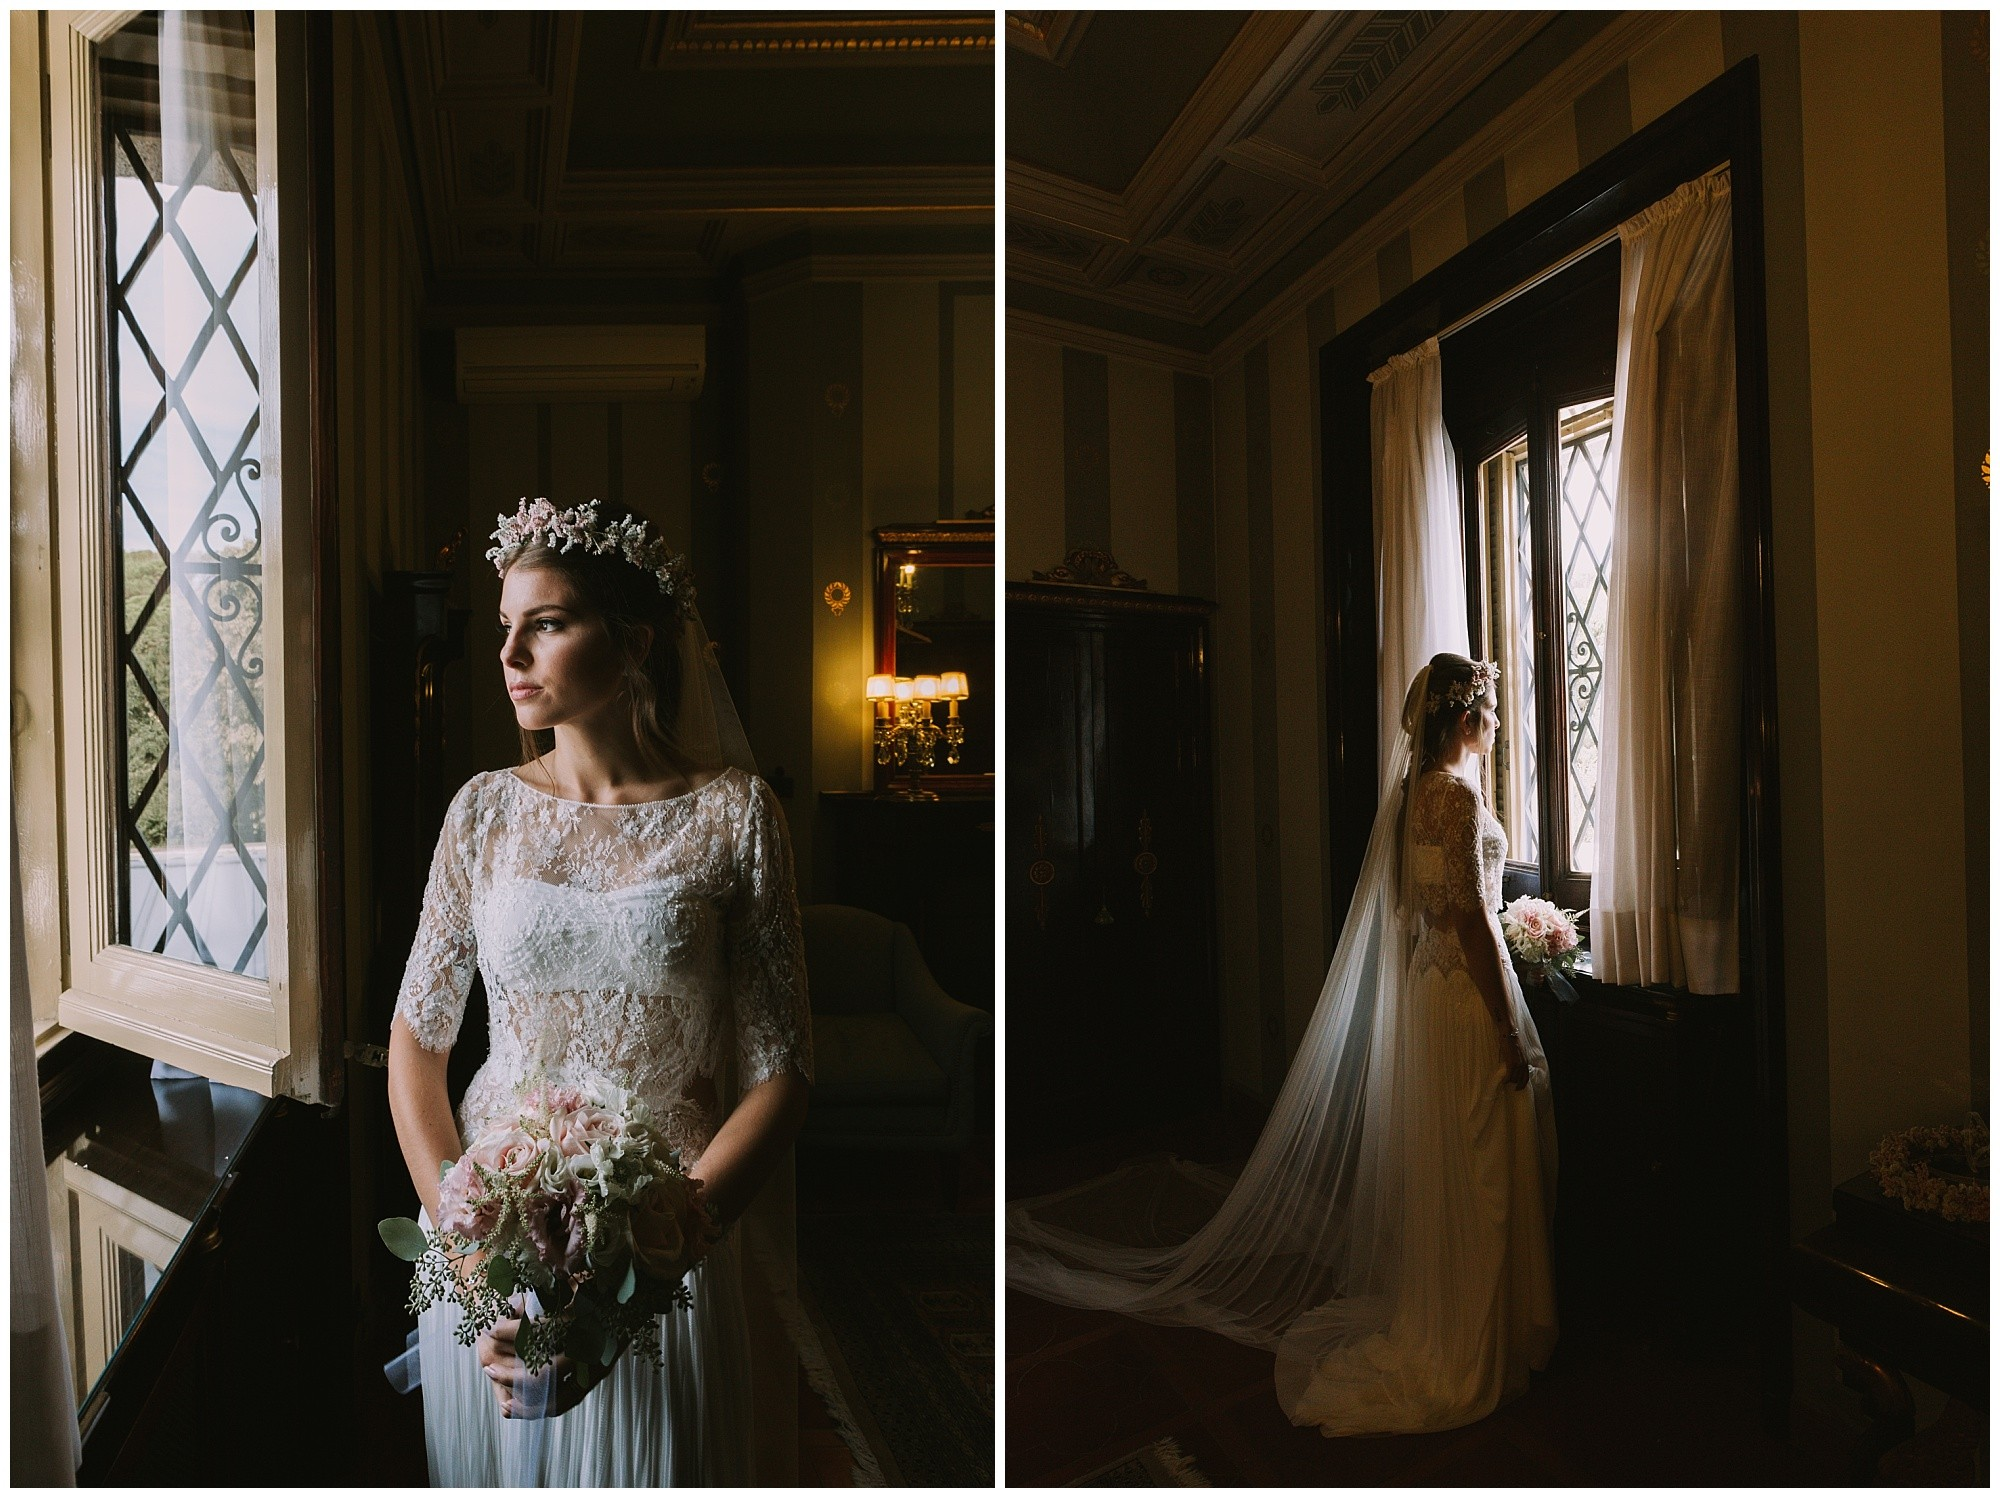 Kateryna-photos-photographe-boda-wedding-barcelona-bell-reco-bride-pics